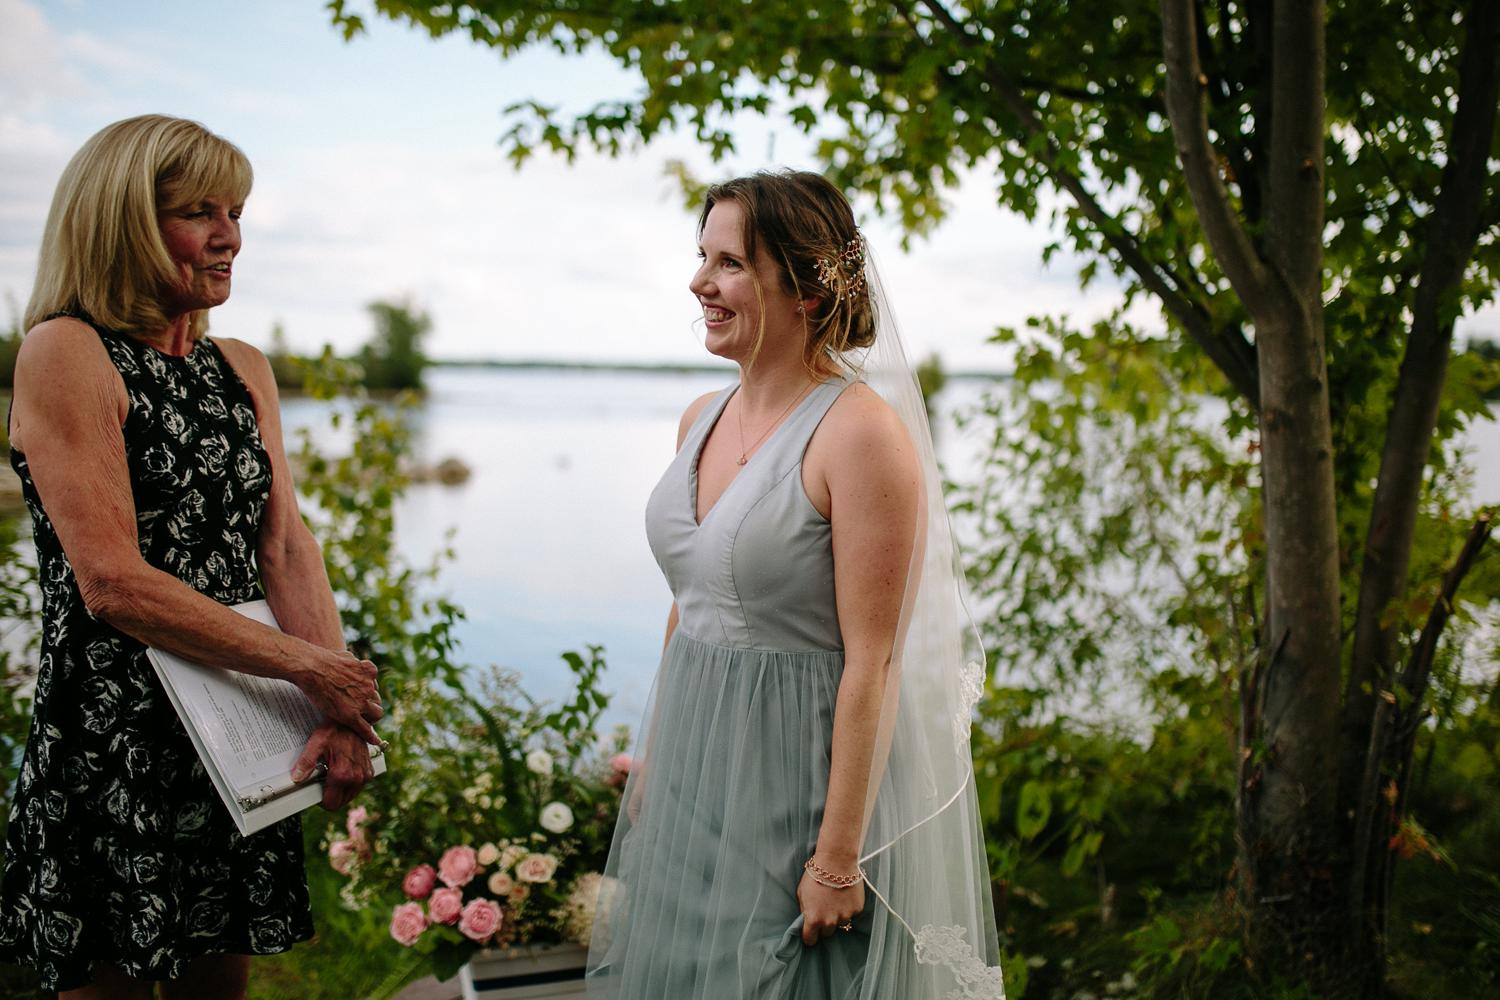 kerry ford photography - small intimate backyard rideau lake island wedding perth ontario-047.jpg